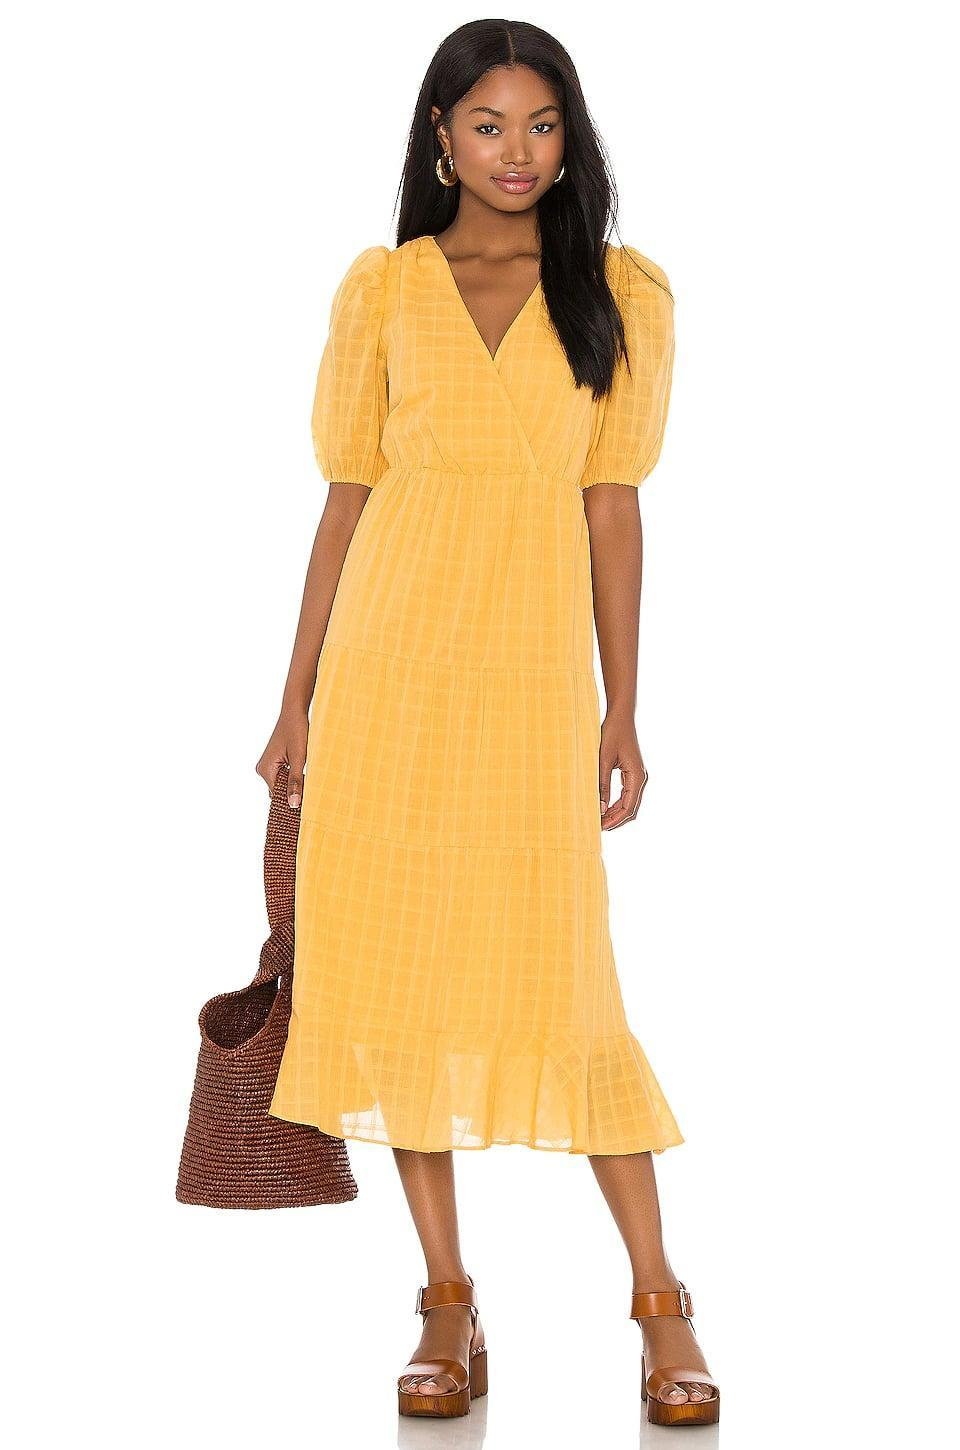 <p>This cheery <span>Heartloom Halia Dress in Marigold</span> ($119) is anything but mellow yellow.</p>